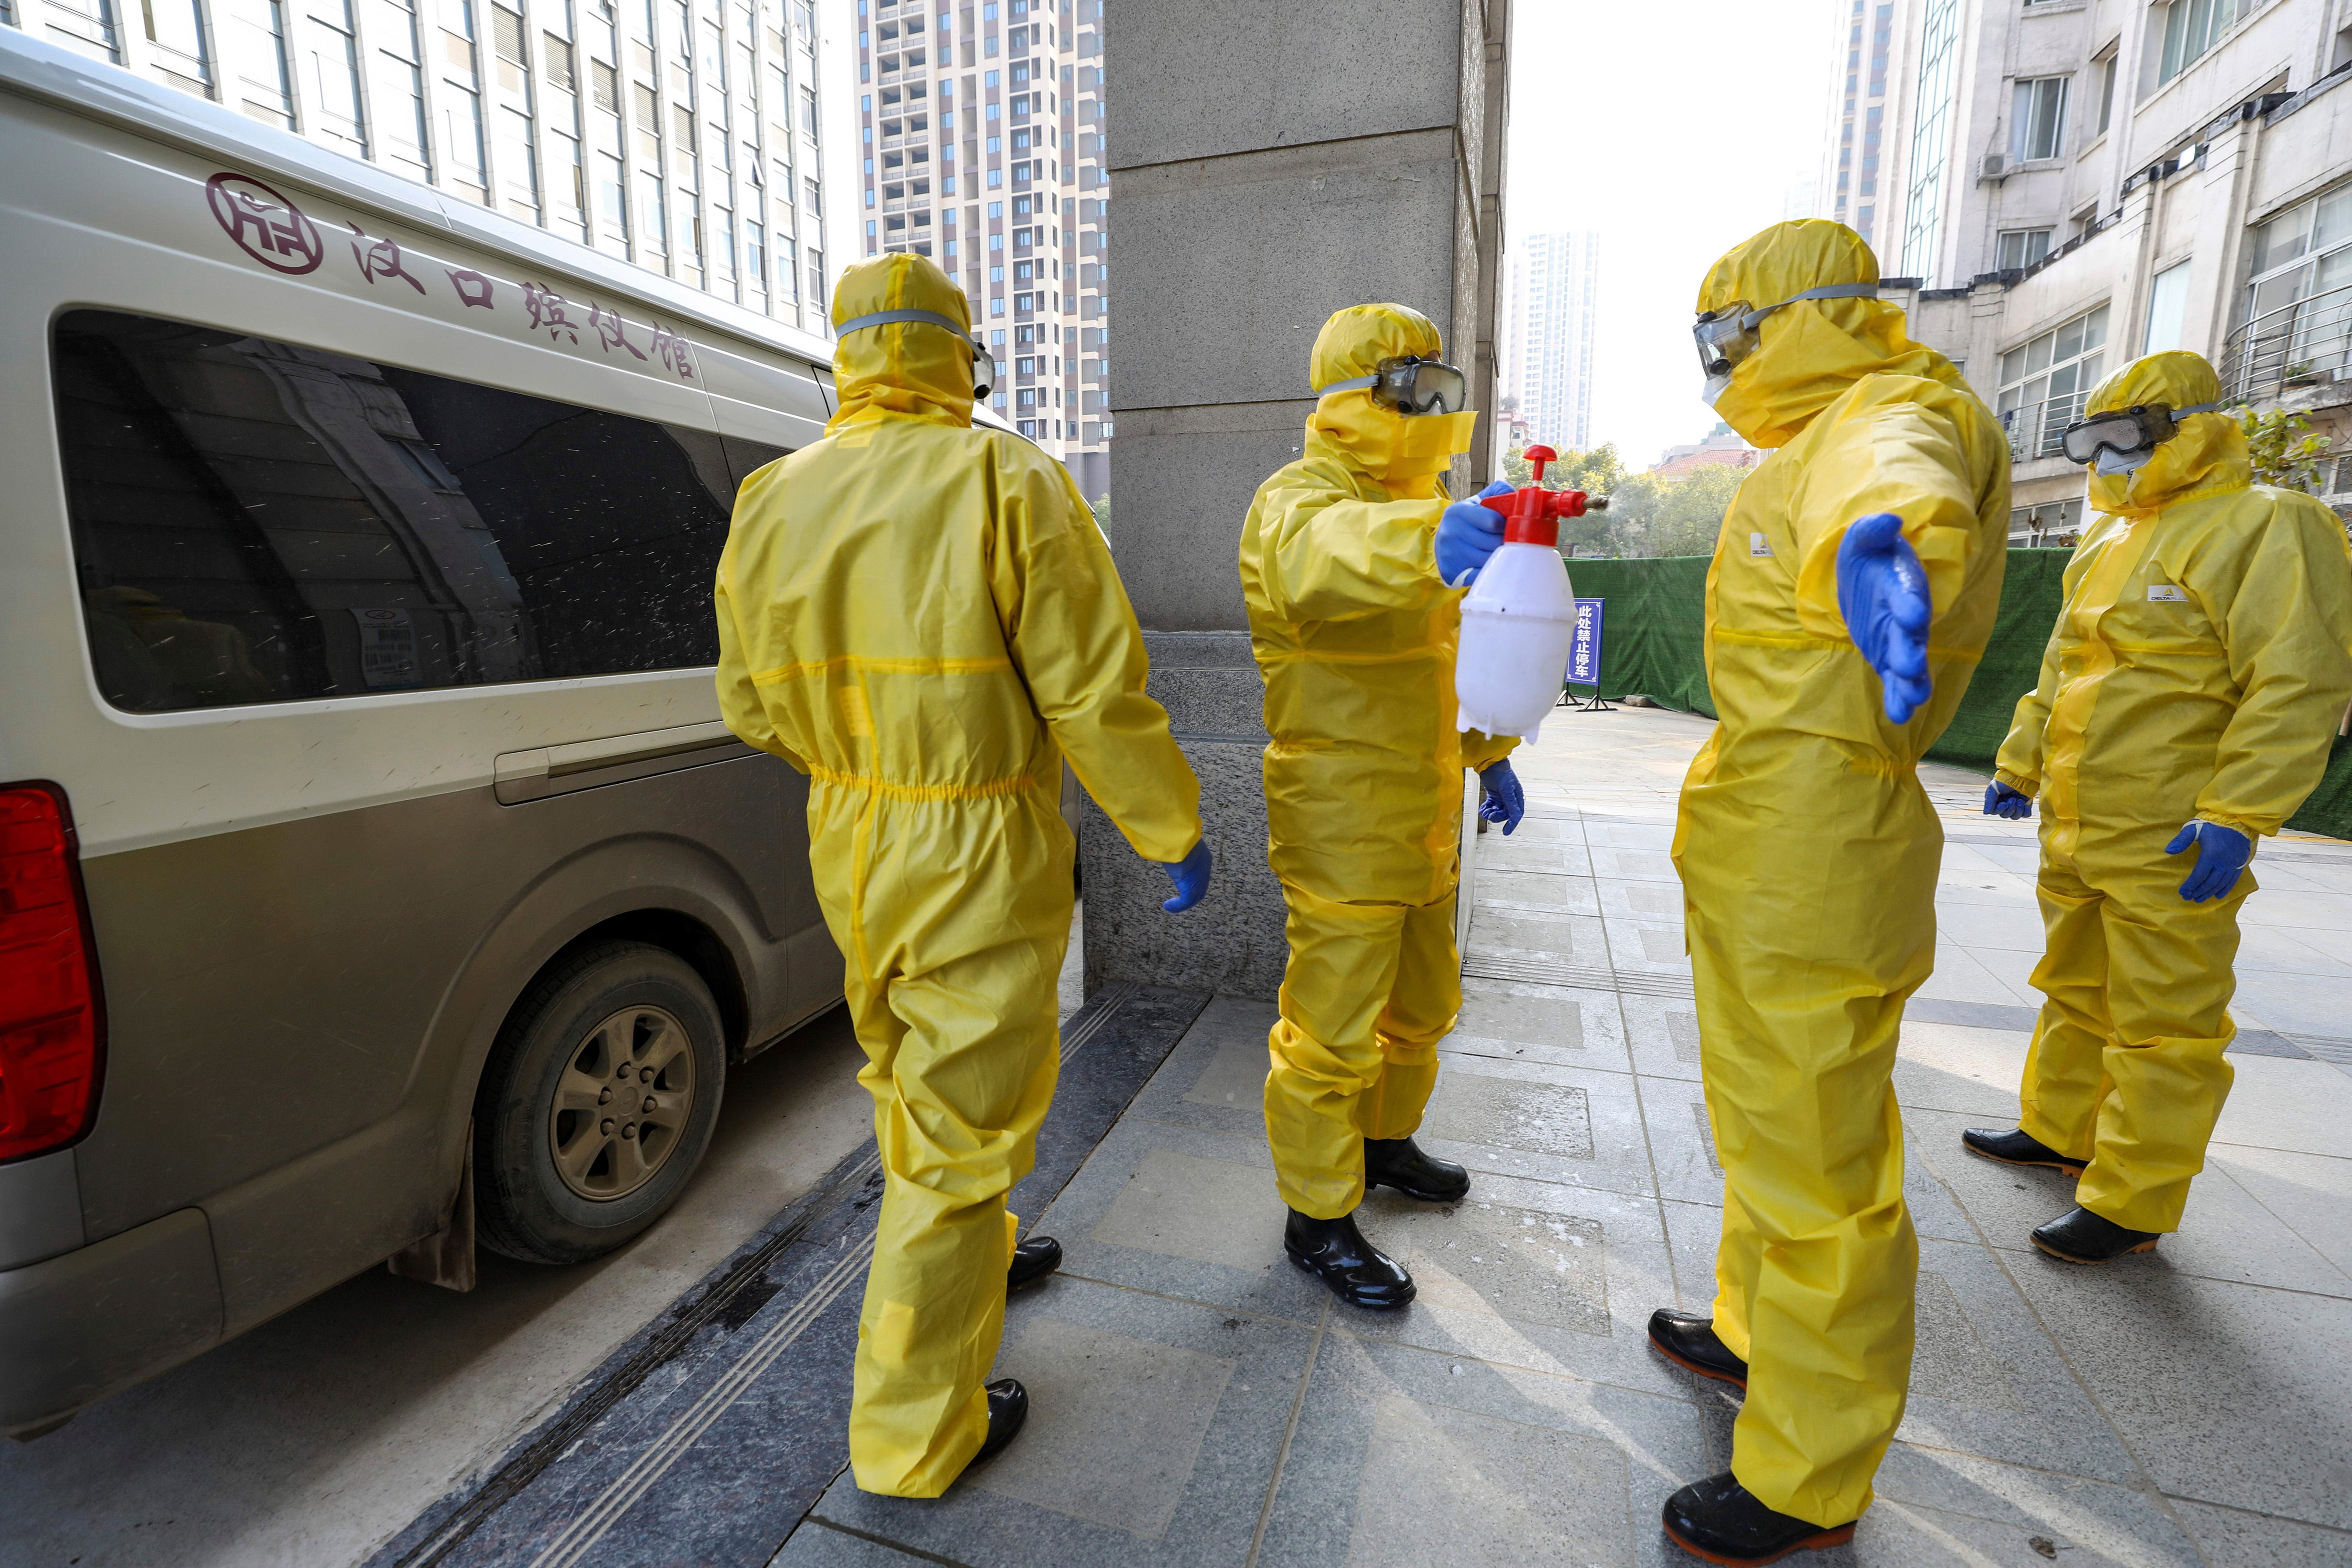 Funeral workers disinfect themselves after handling a virus victim in Wuhan in central China's Hubei Province.